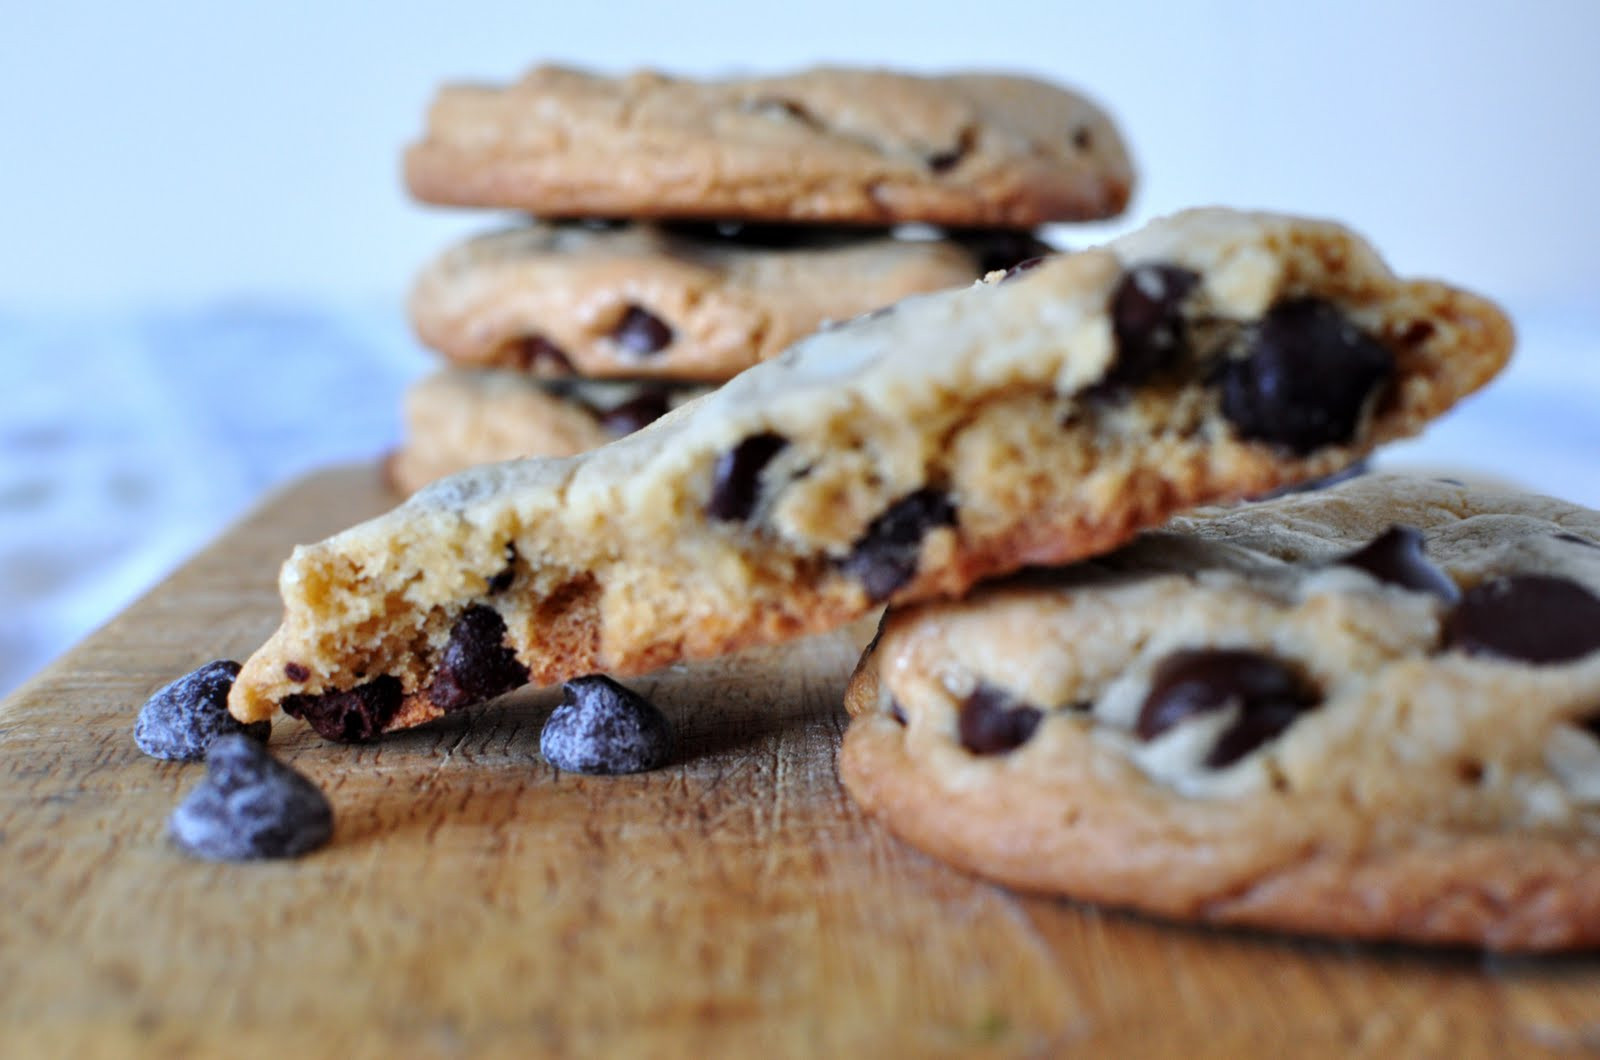 America'S Test Kitchen Chocolate Chip Cookies  My Tiny Oven America's Test Kitchen Chocolate Chip Cookies